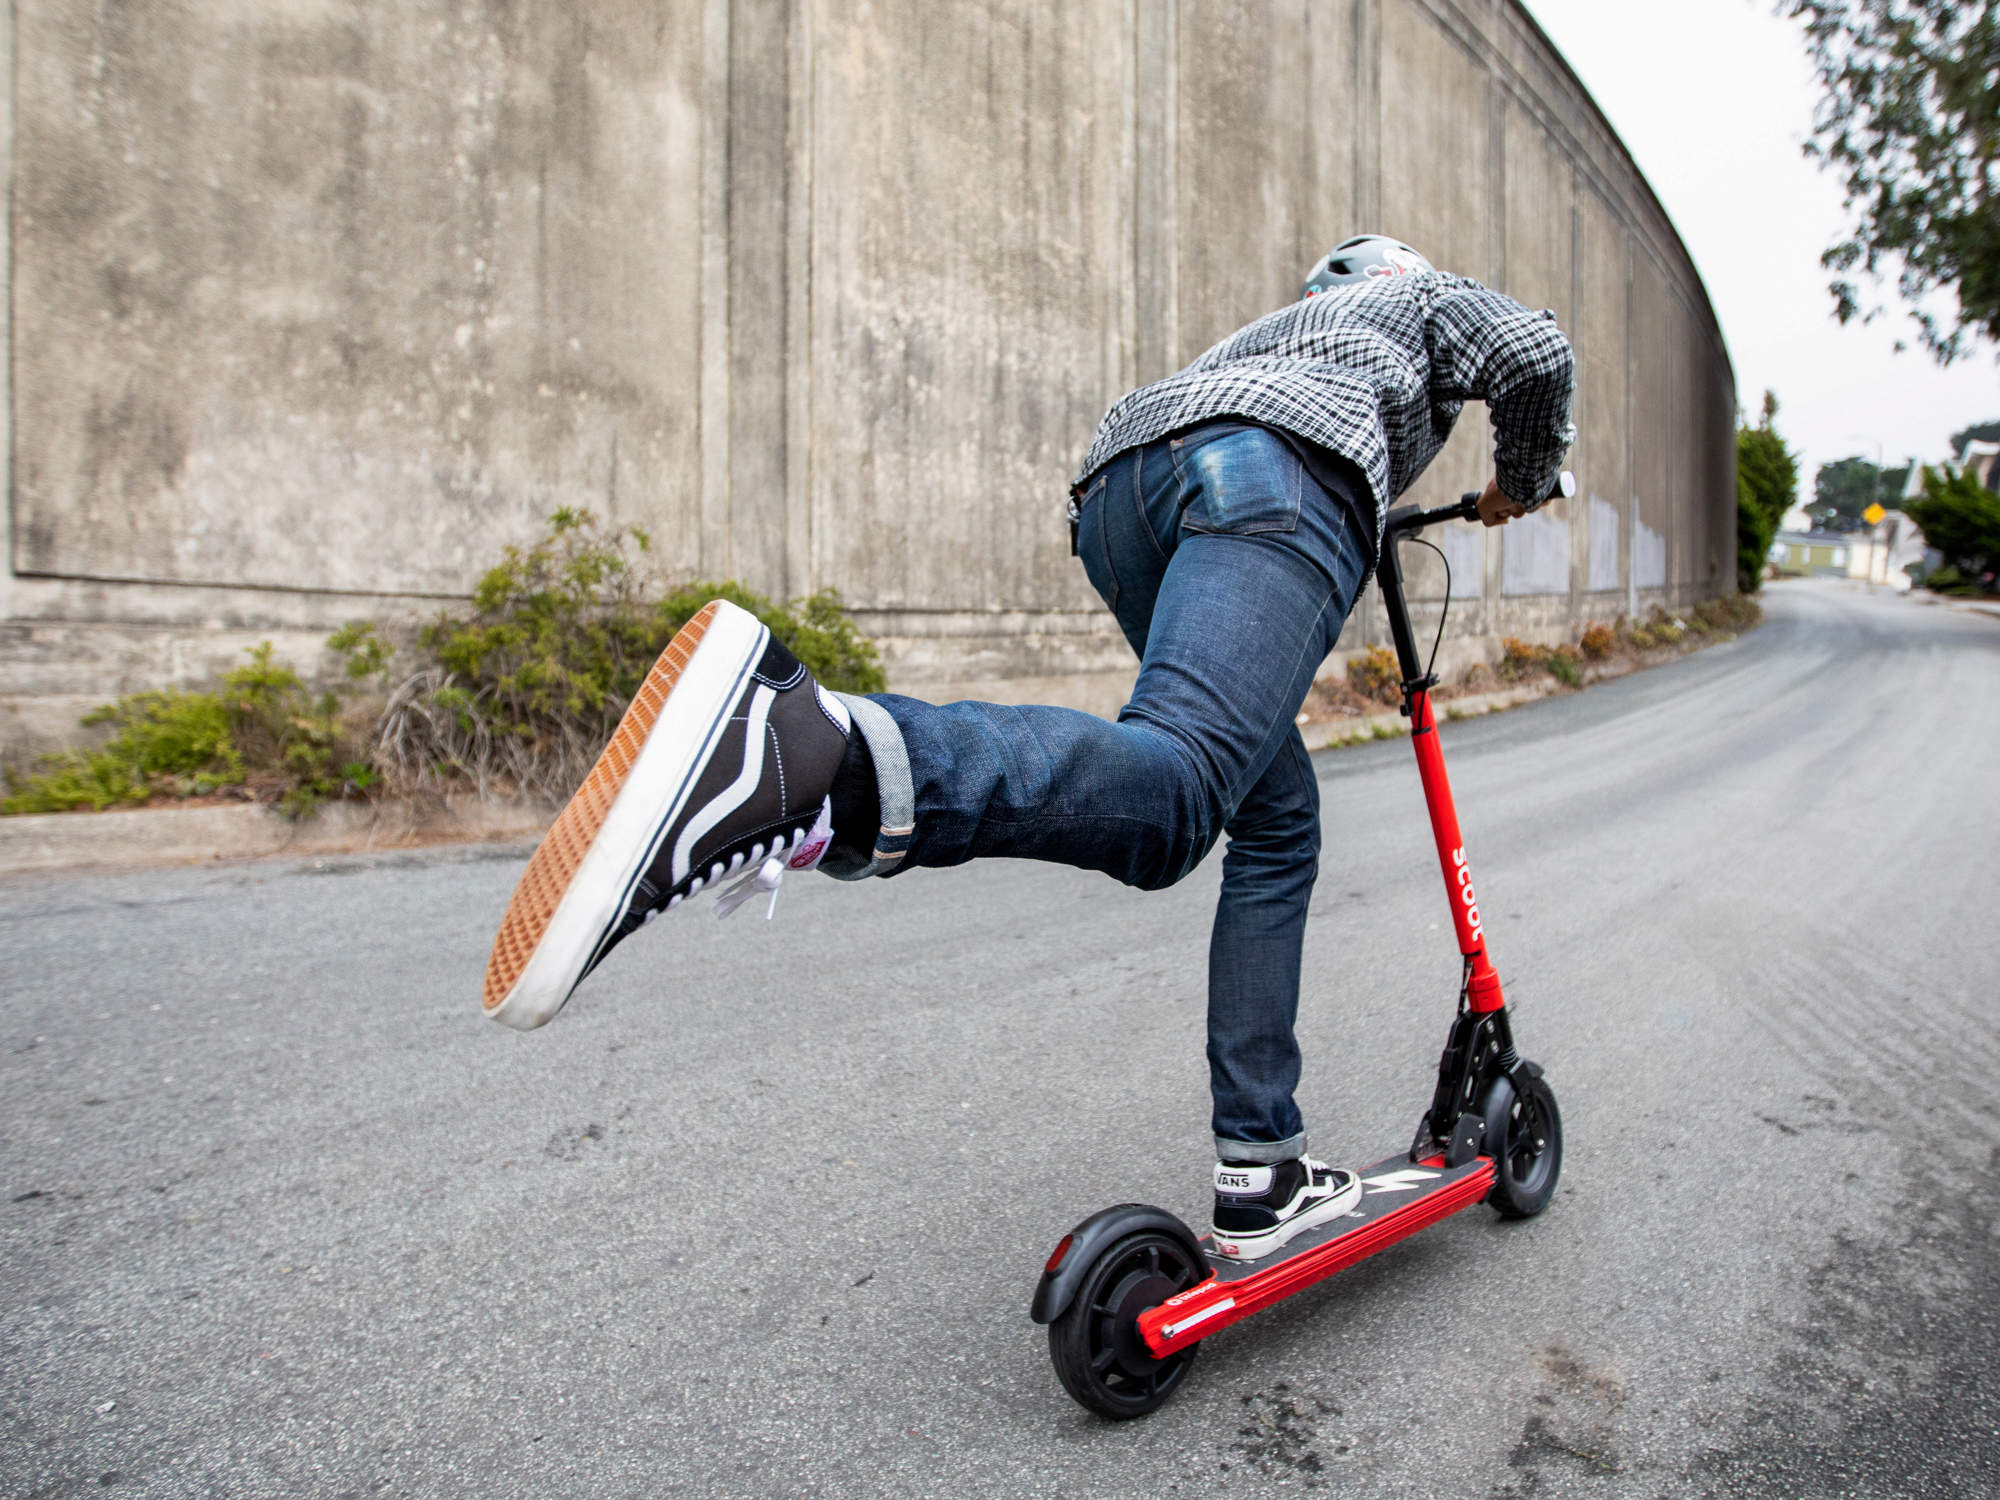 Scoot's Kick electric scooters